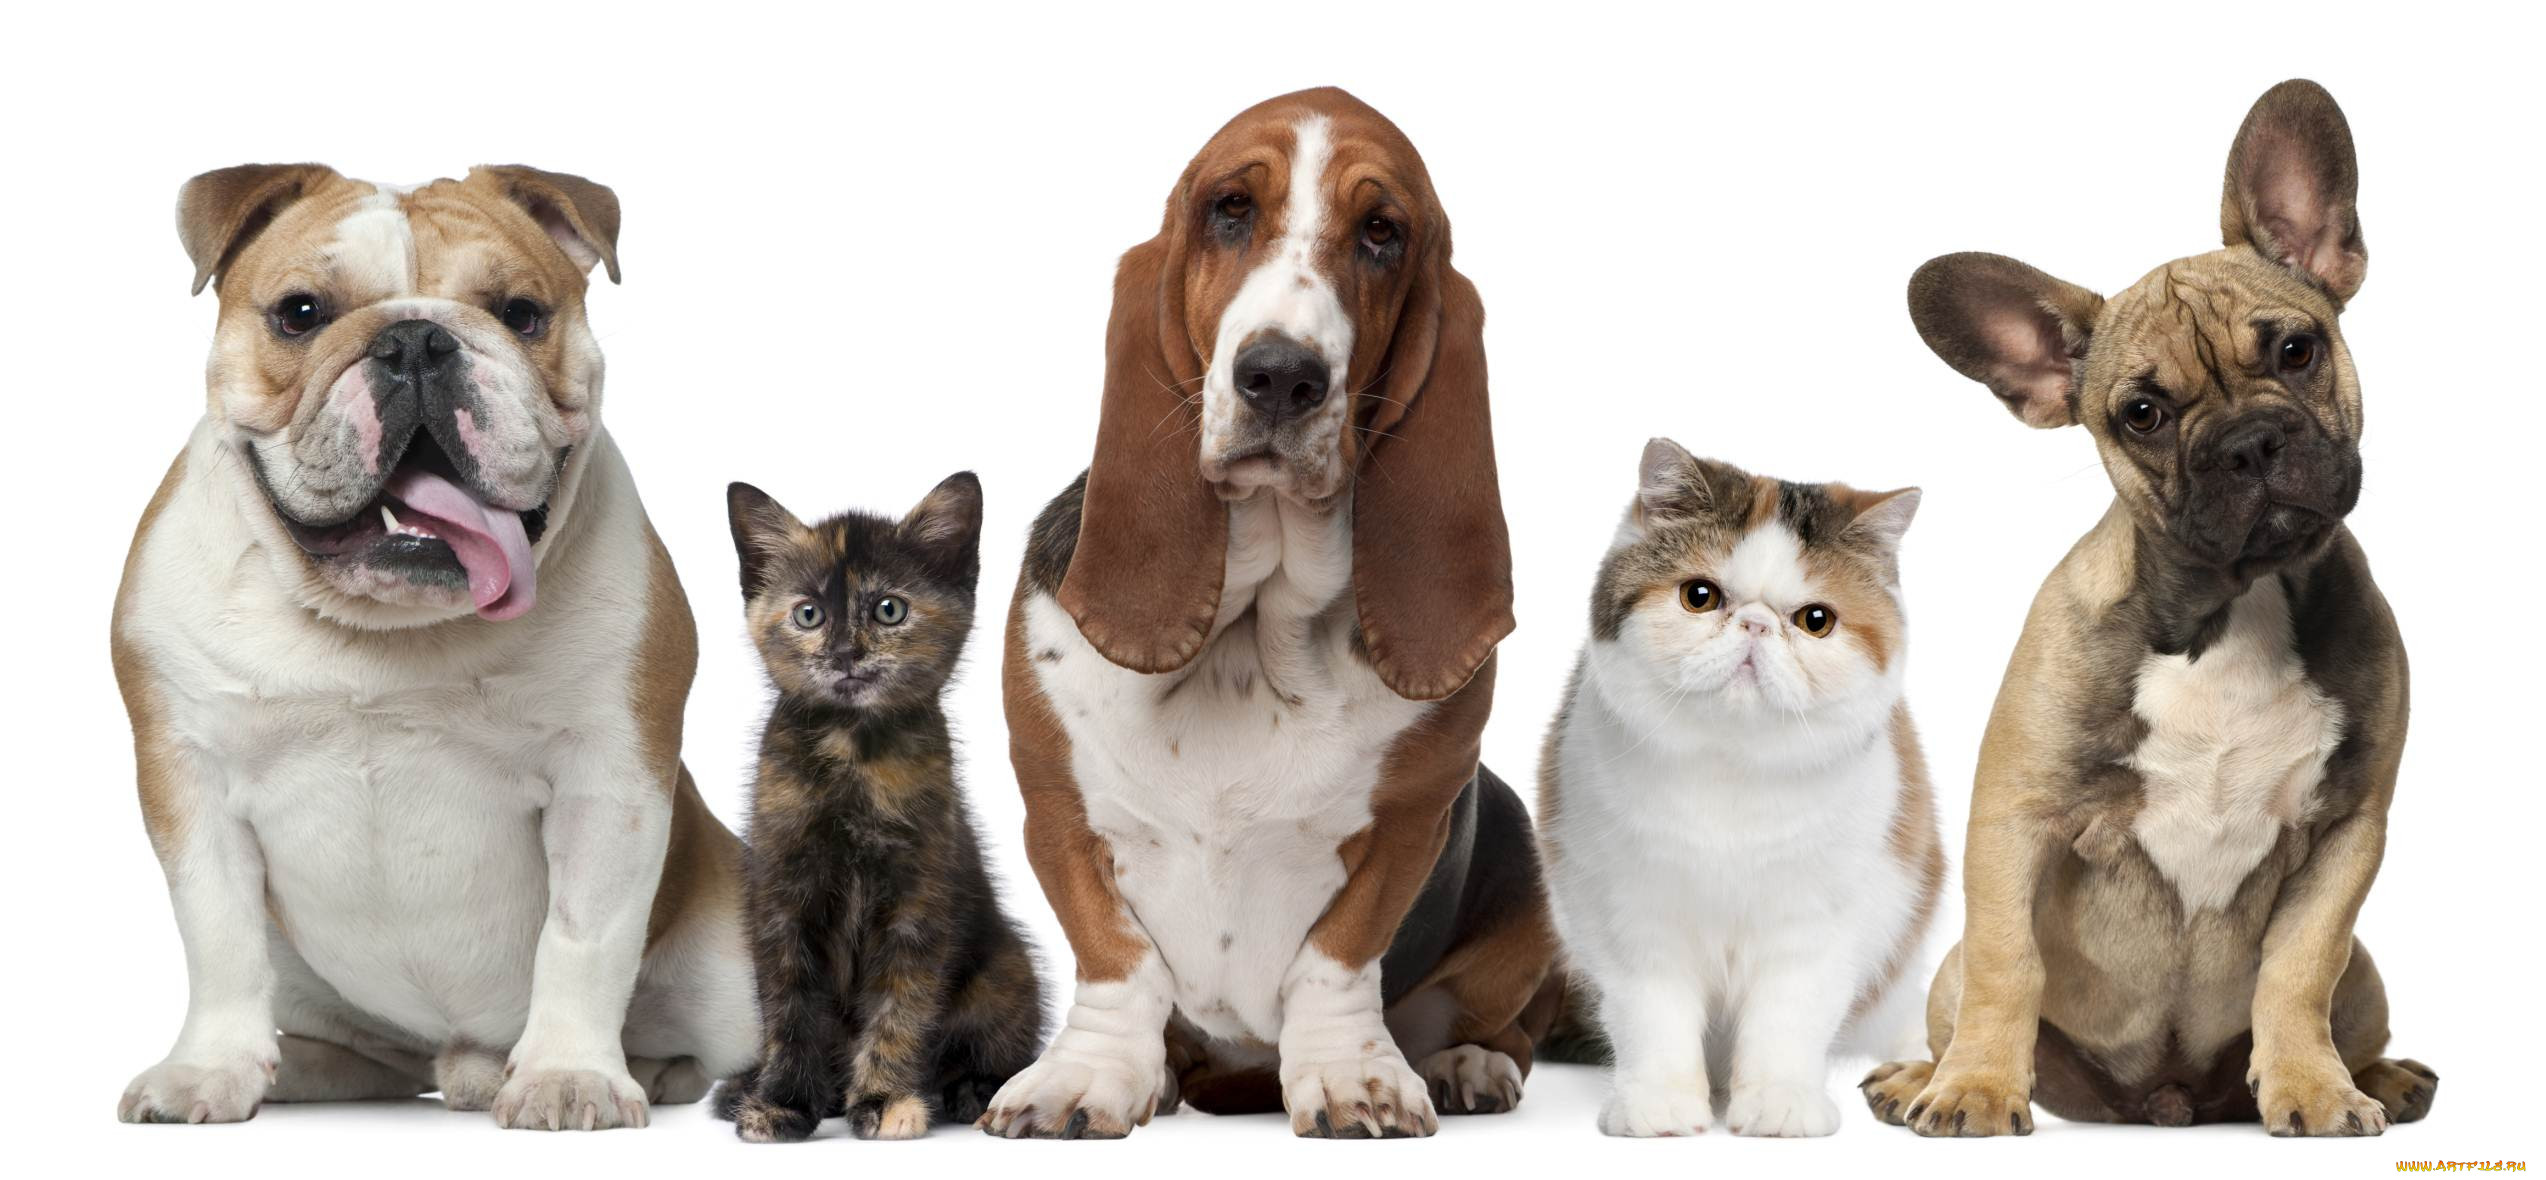 the favorite pet a comparison of cats and dogs as pets